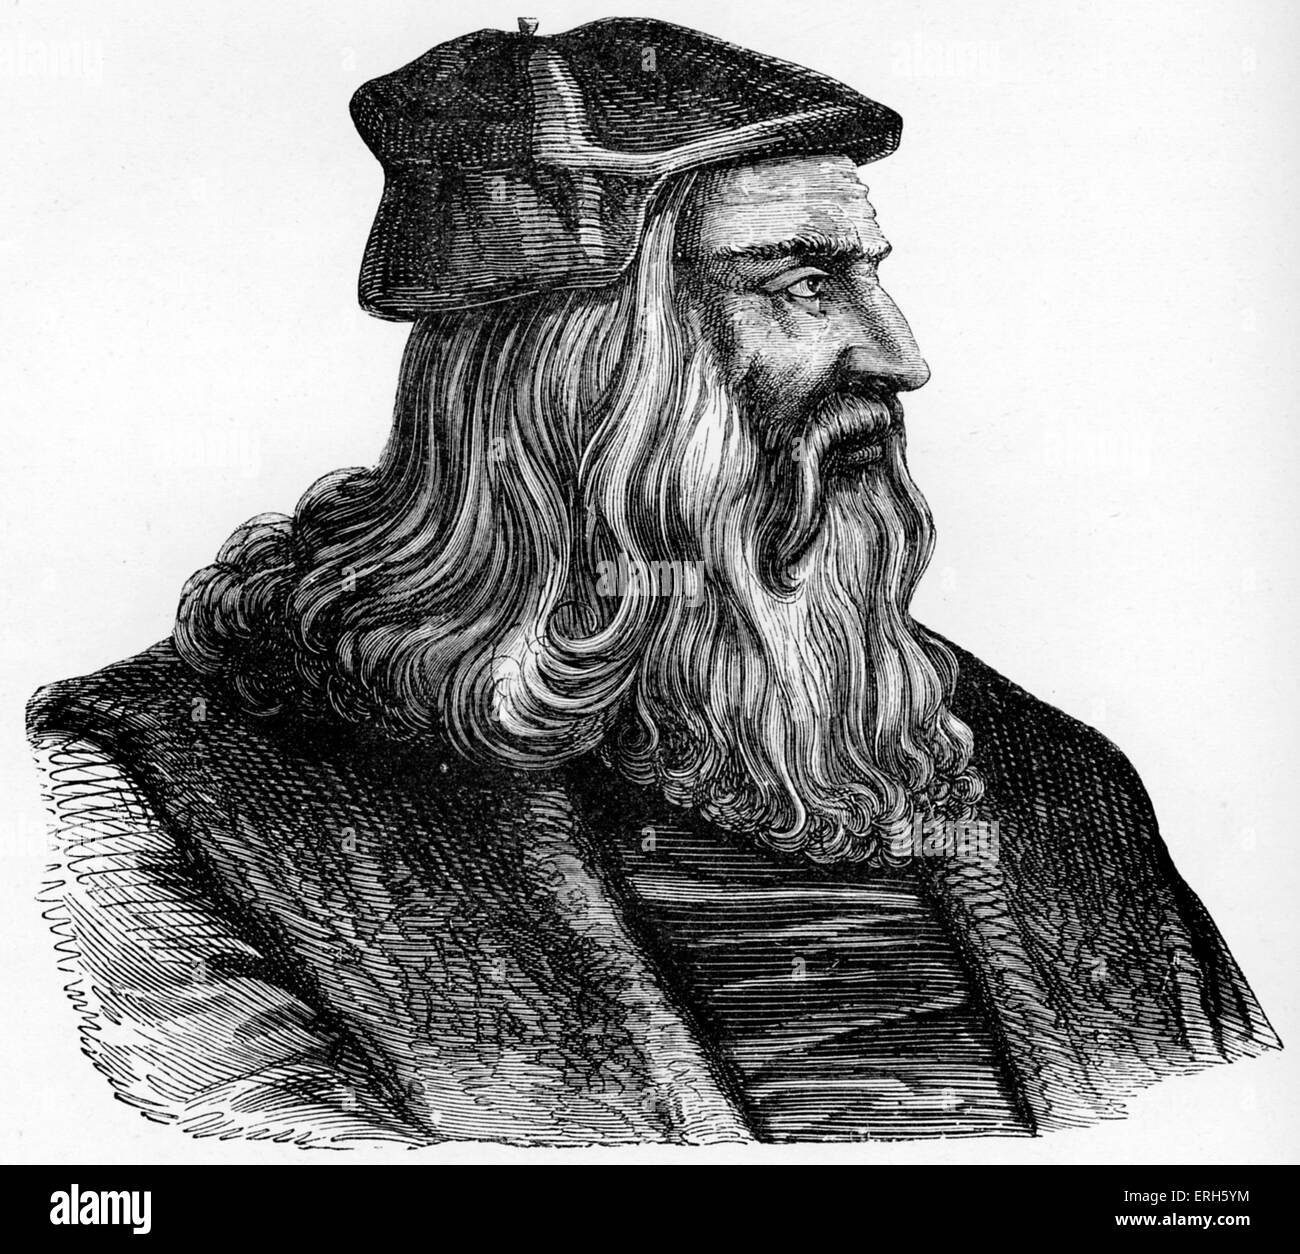 Leonardo da Vinci -  Italian Renaissance painter, sculptor, writer, scientist, architect and engineer. Venetian - Stock Image